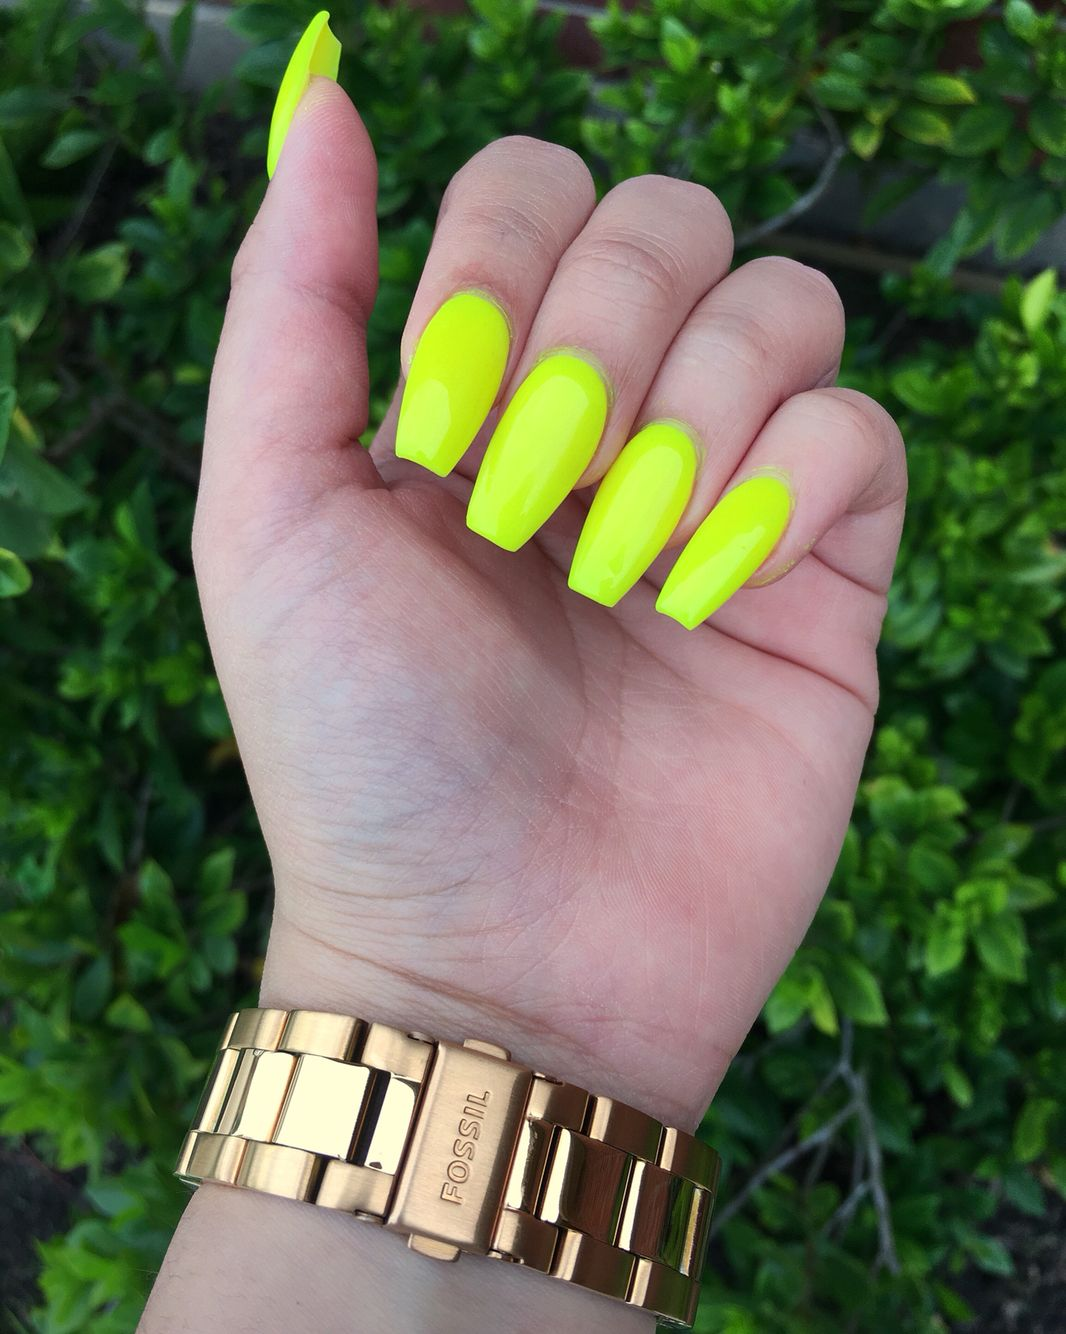 spring vibes! #neon #yellow #coffin | Nails | Pinterest | Neon ...